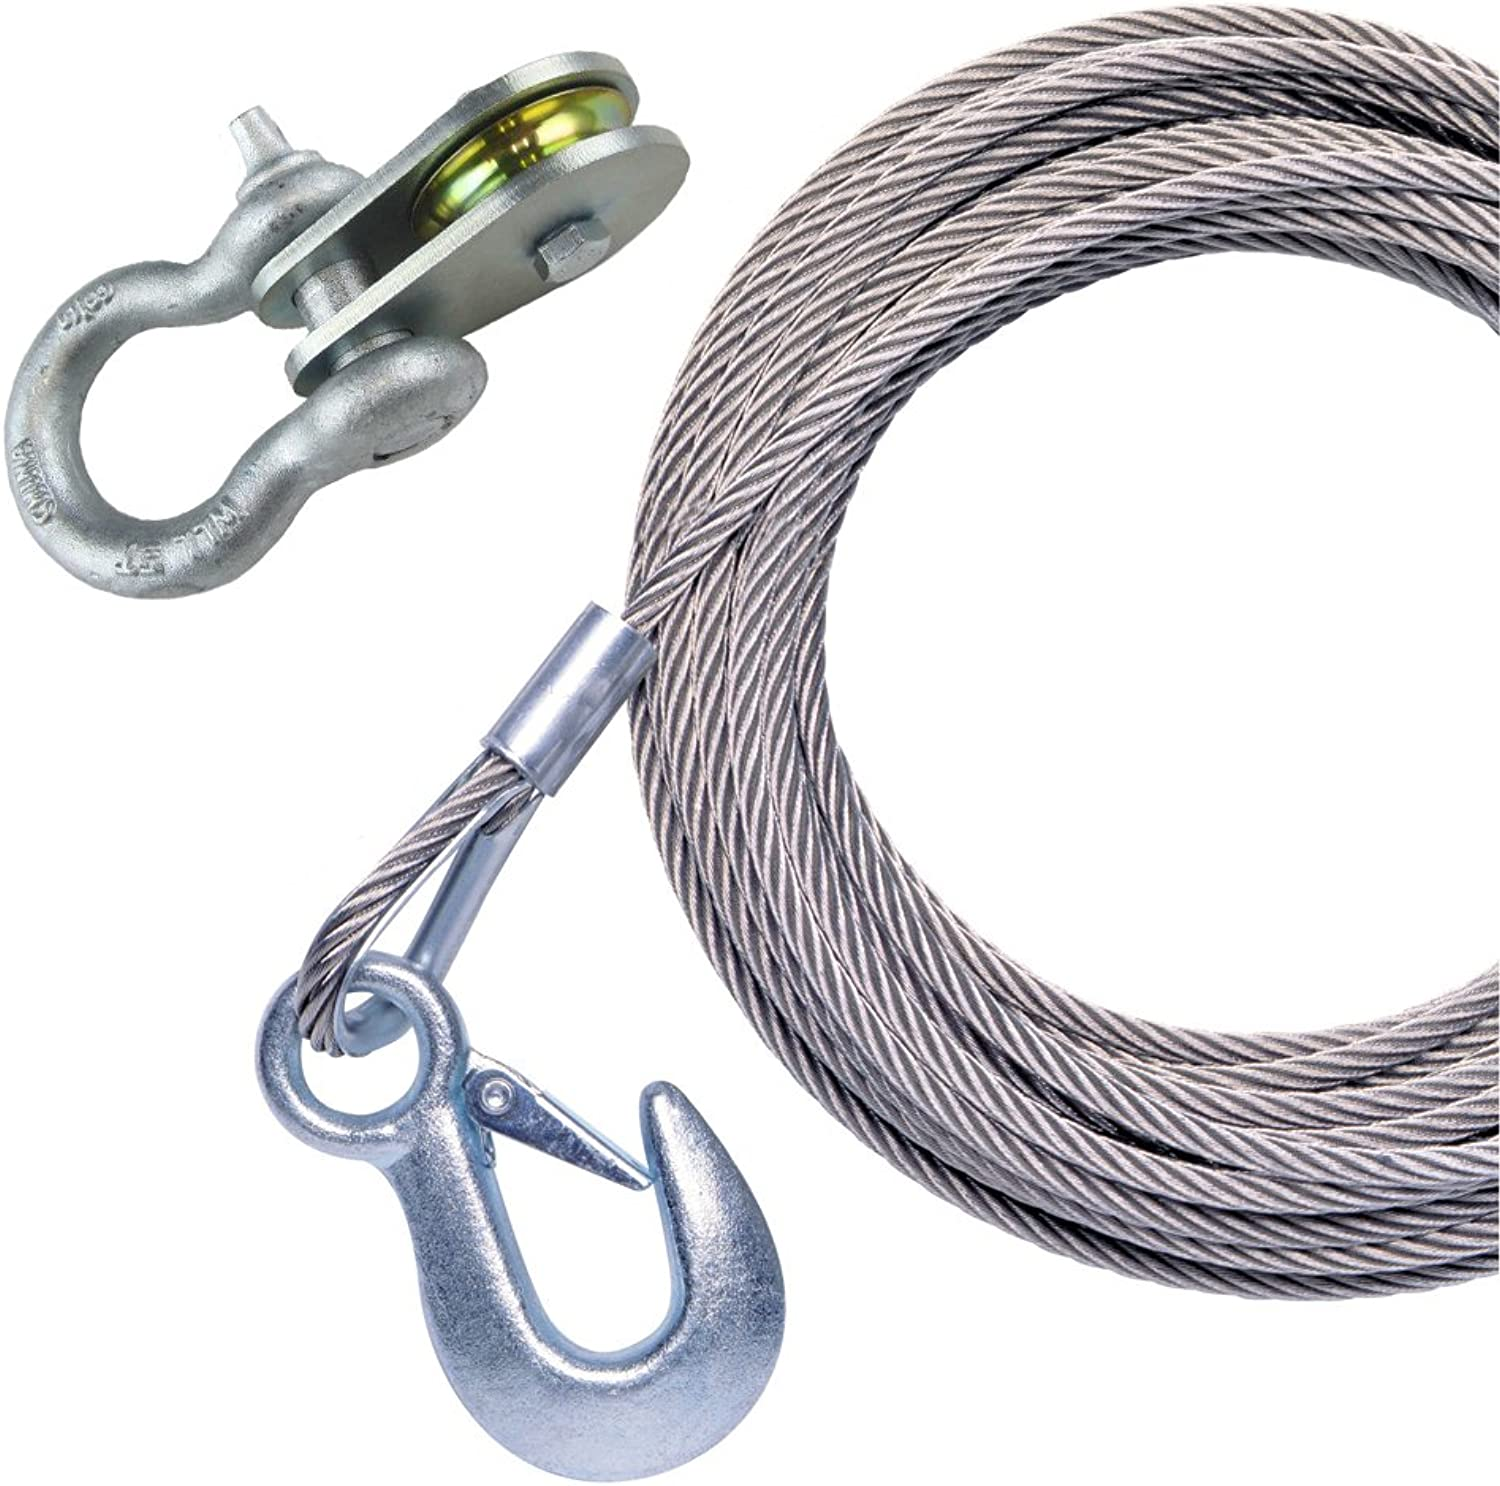 Powerwinch 50' x 7 32  Stainless Steel Universal Premium Replacement Galvanized Cable w Hook & Swivel Pulley Block